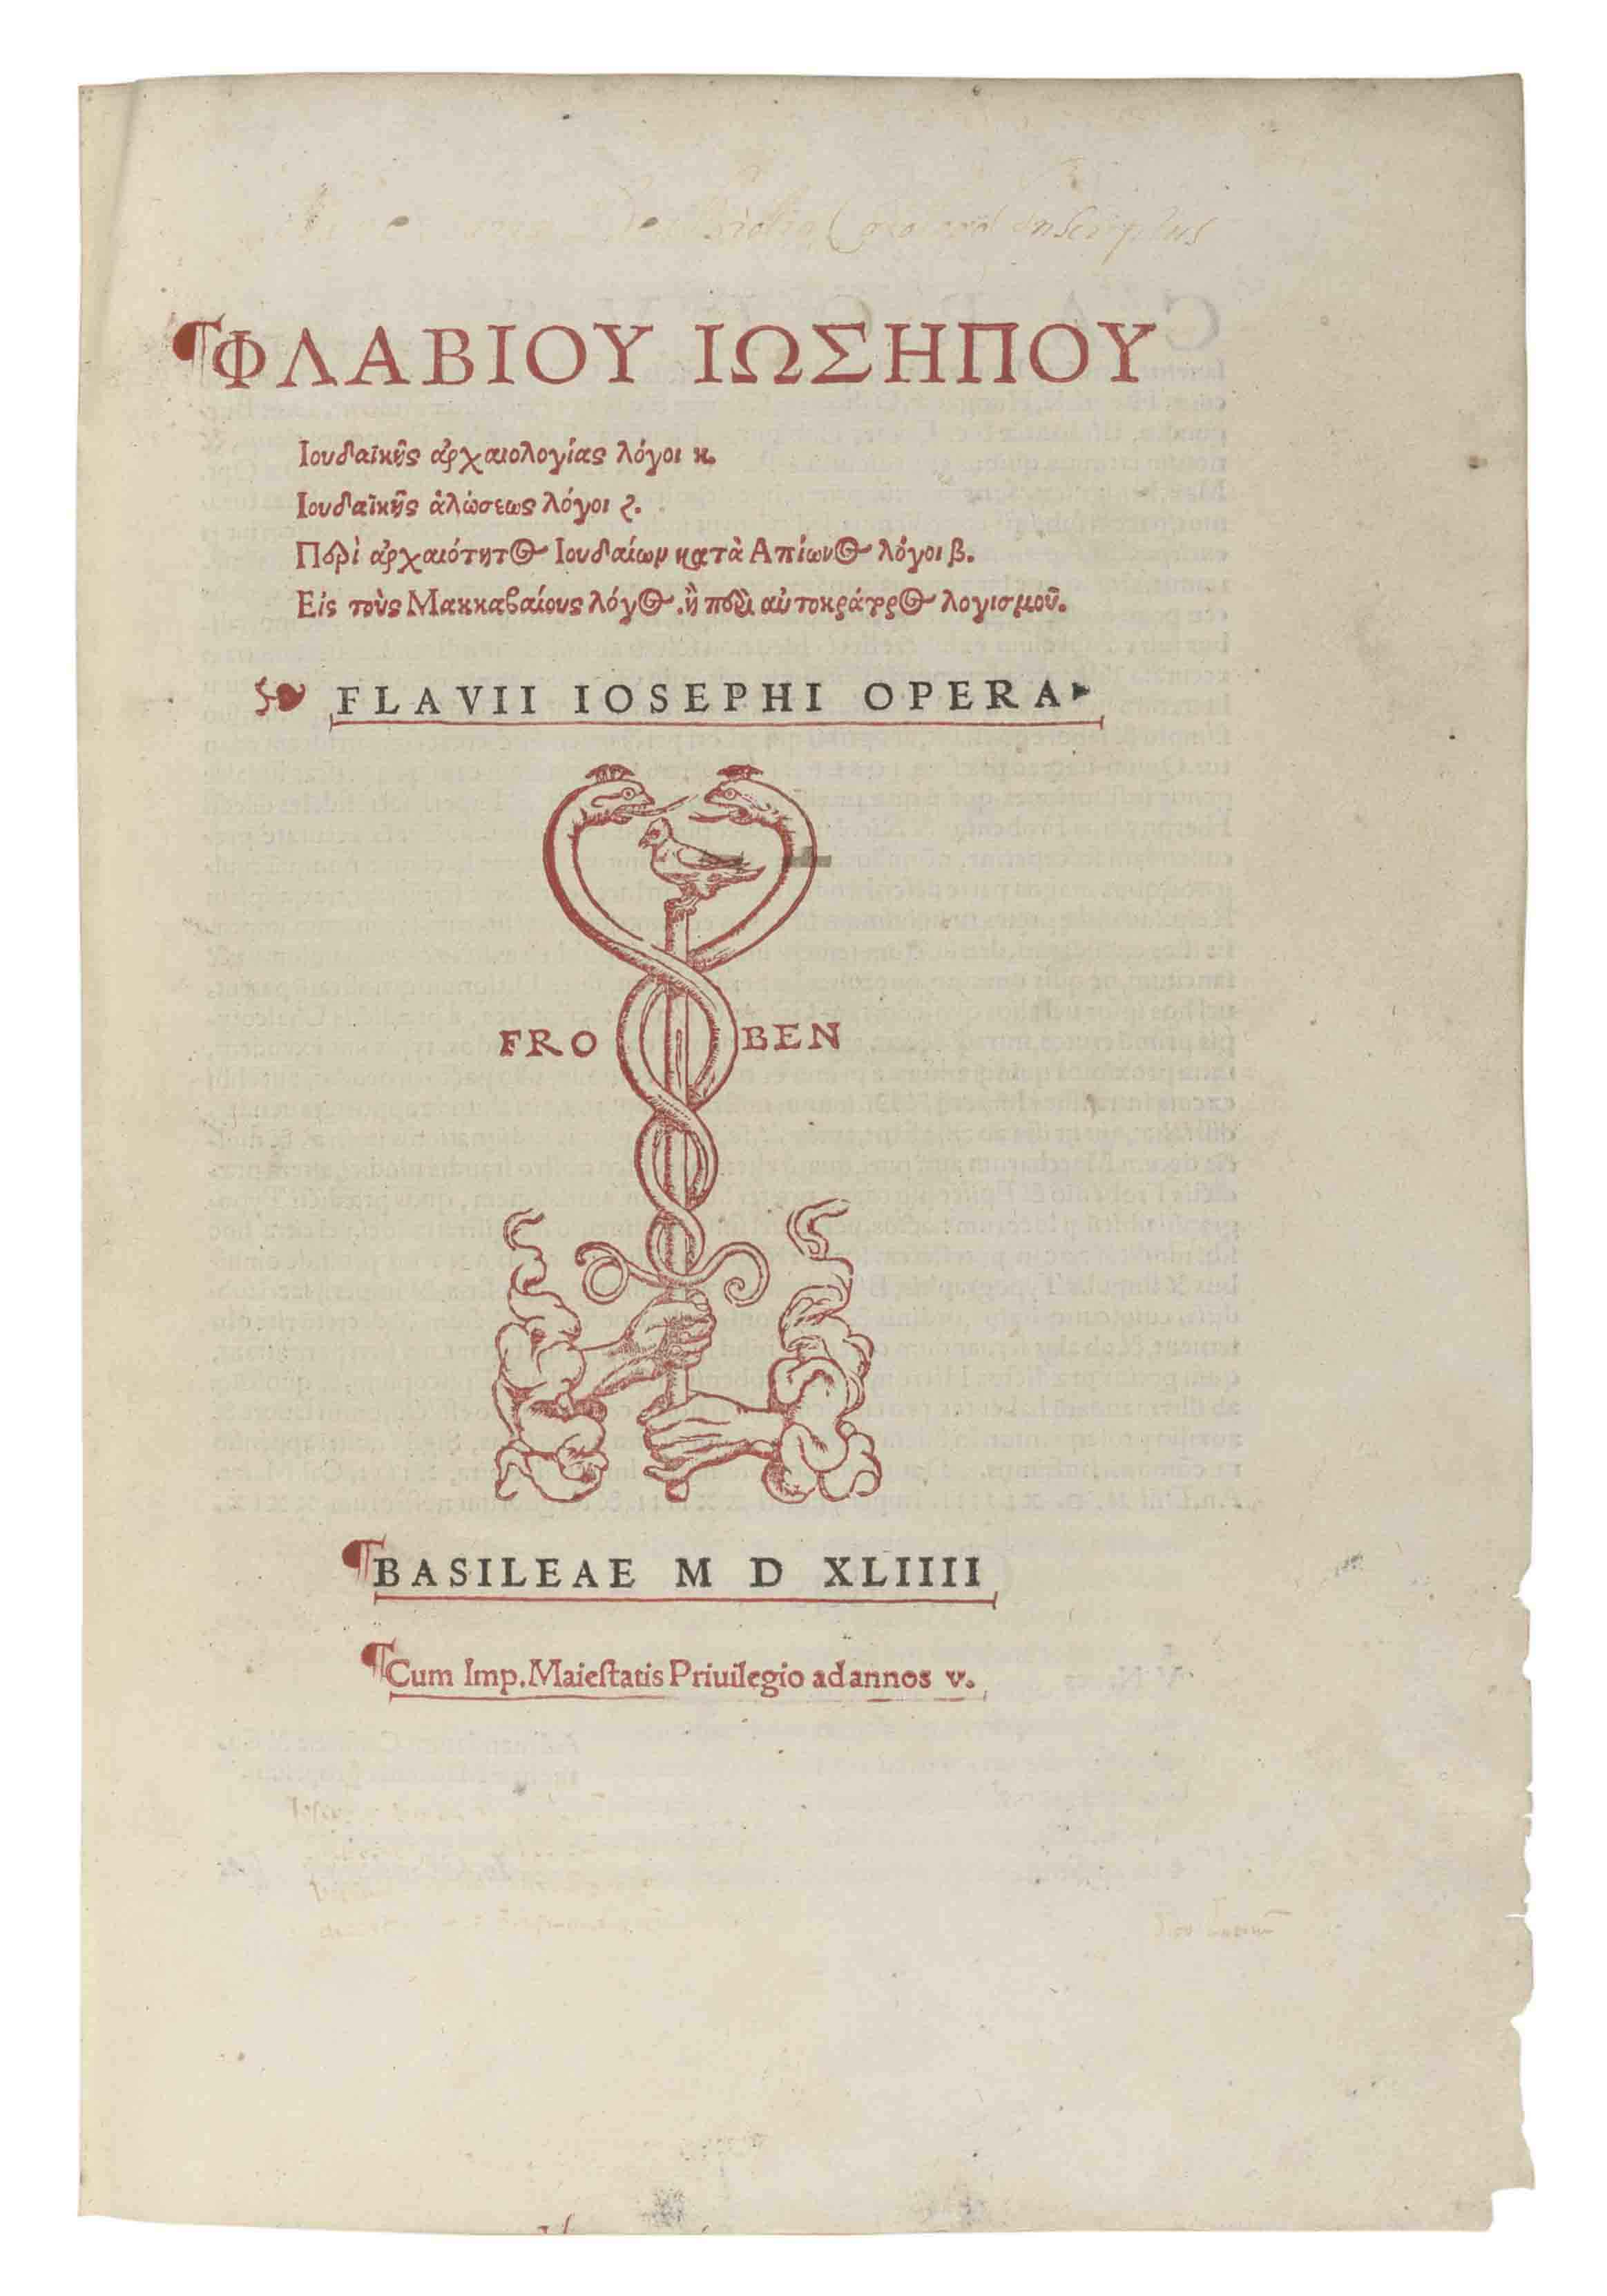 JOSEPHUS, Flavius (c.37-c.100). Opera, in Greek. Basel: Hieronymus Froben and Nicolaus Episcopius, 1544. 2° (325 x 220mm). Title printed in red and black, printer's device on title and last leaf. (Occasional light browning, repaired tears touching the text on a1 and i6.) 19th-century vellum, gilt title on spine (some spotting), modern cloth box. Provenance: Beatae Maria di Biolio (early faded ownership inscription on title) -- Greek and Latin annotations.